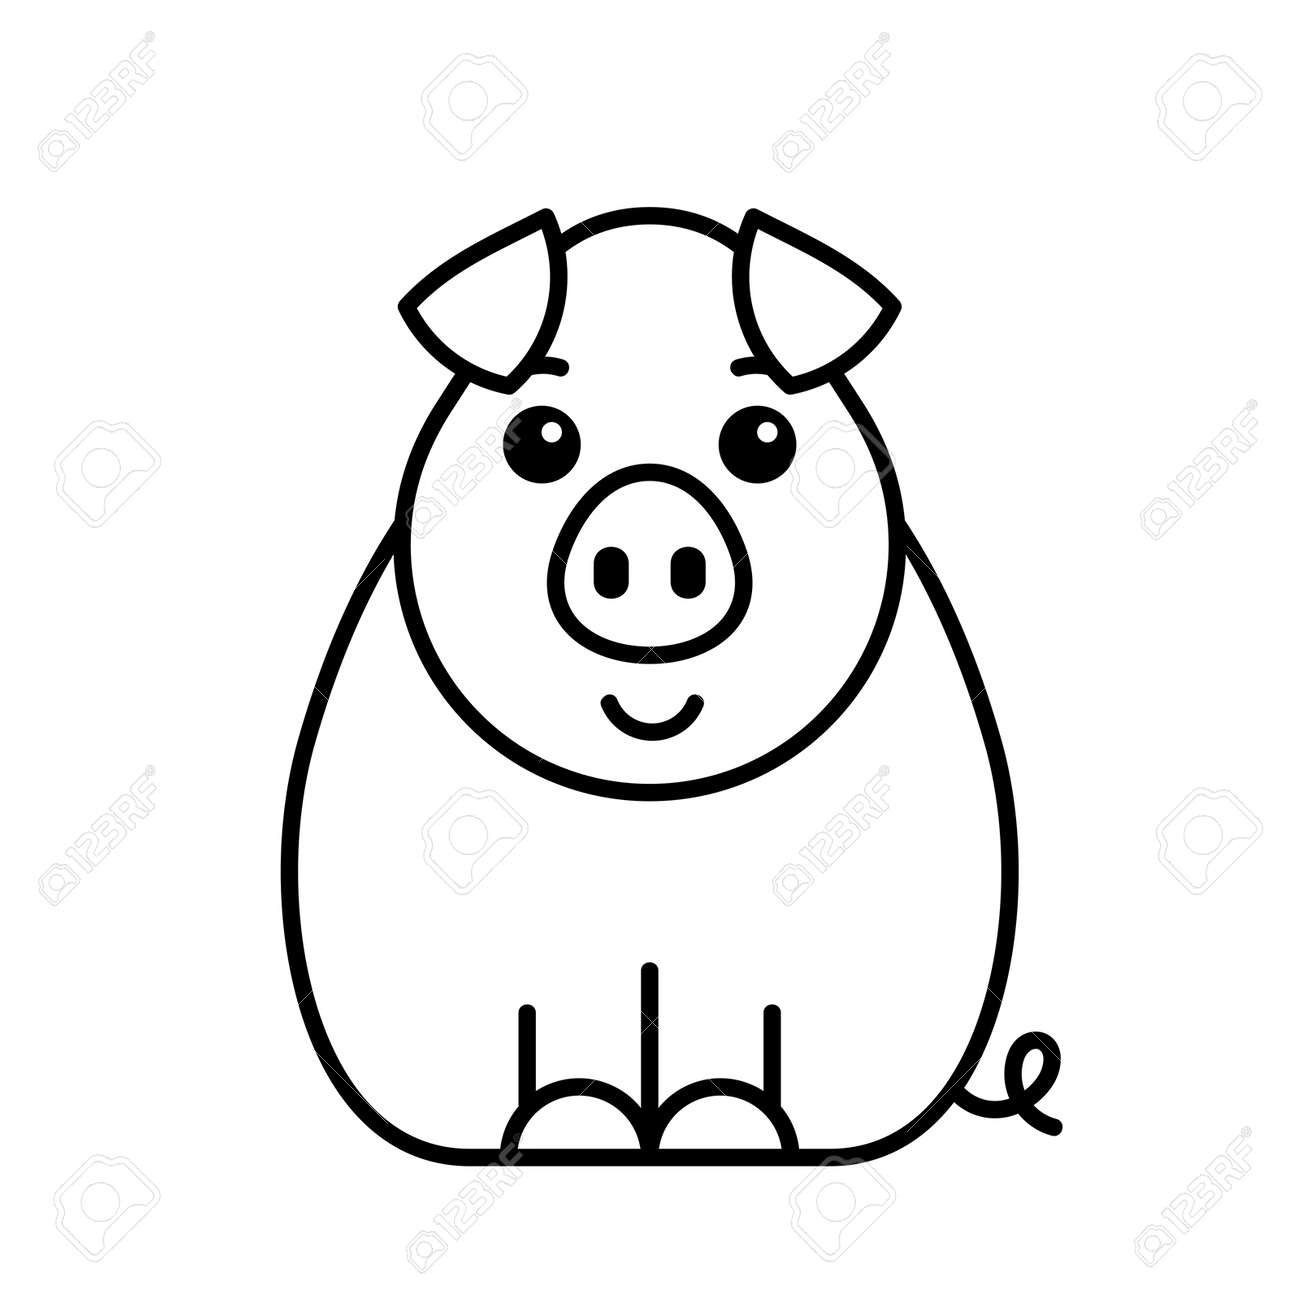 Pig icon. Icon design. Template elements - 171231630